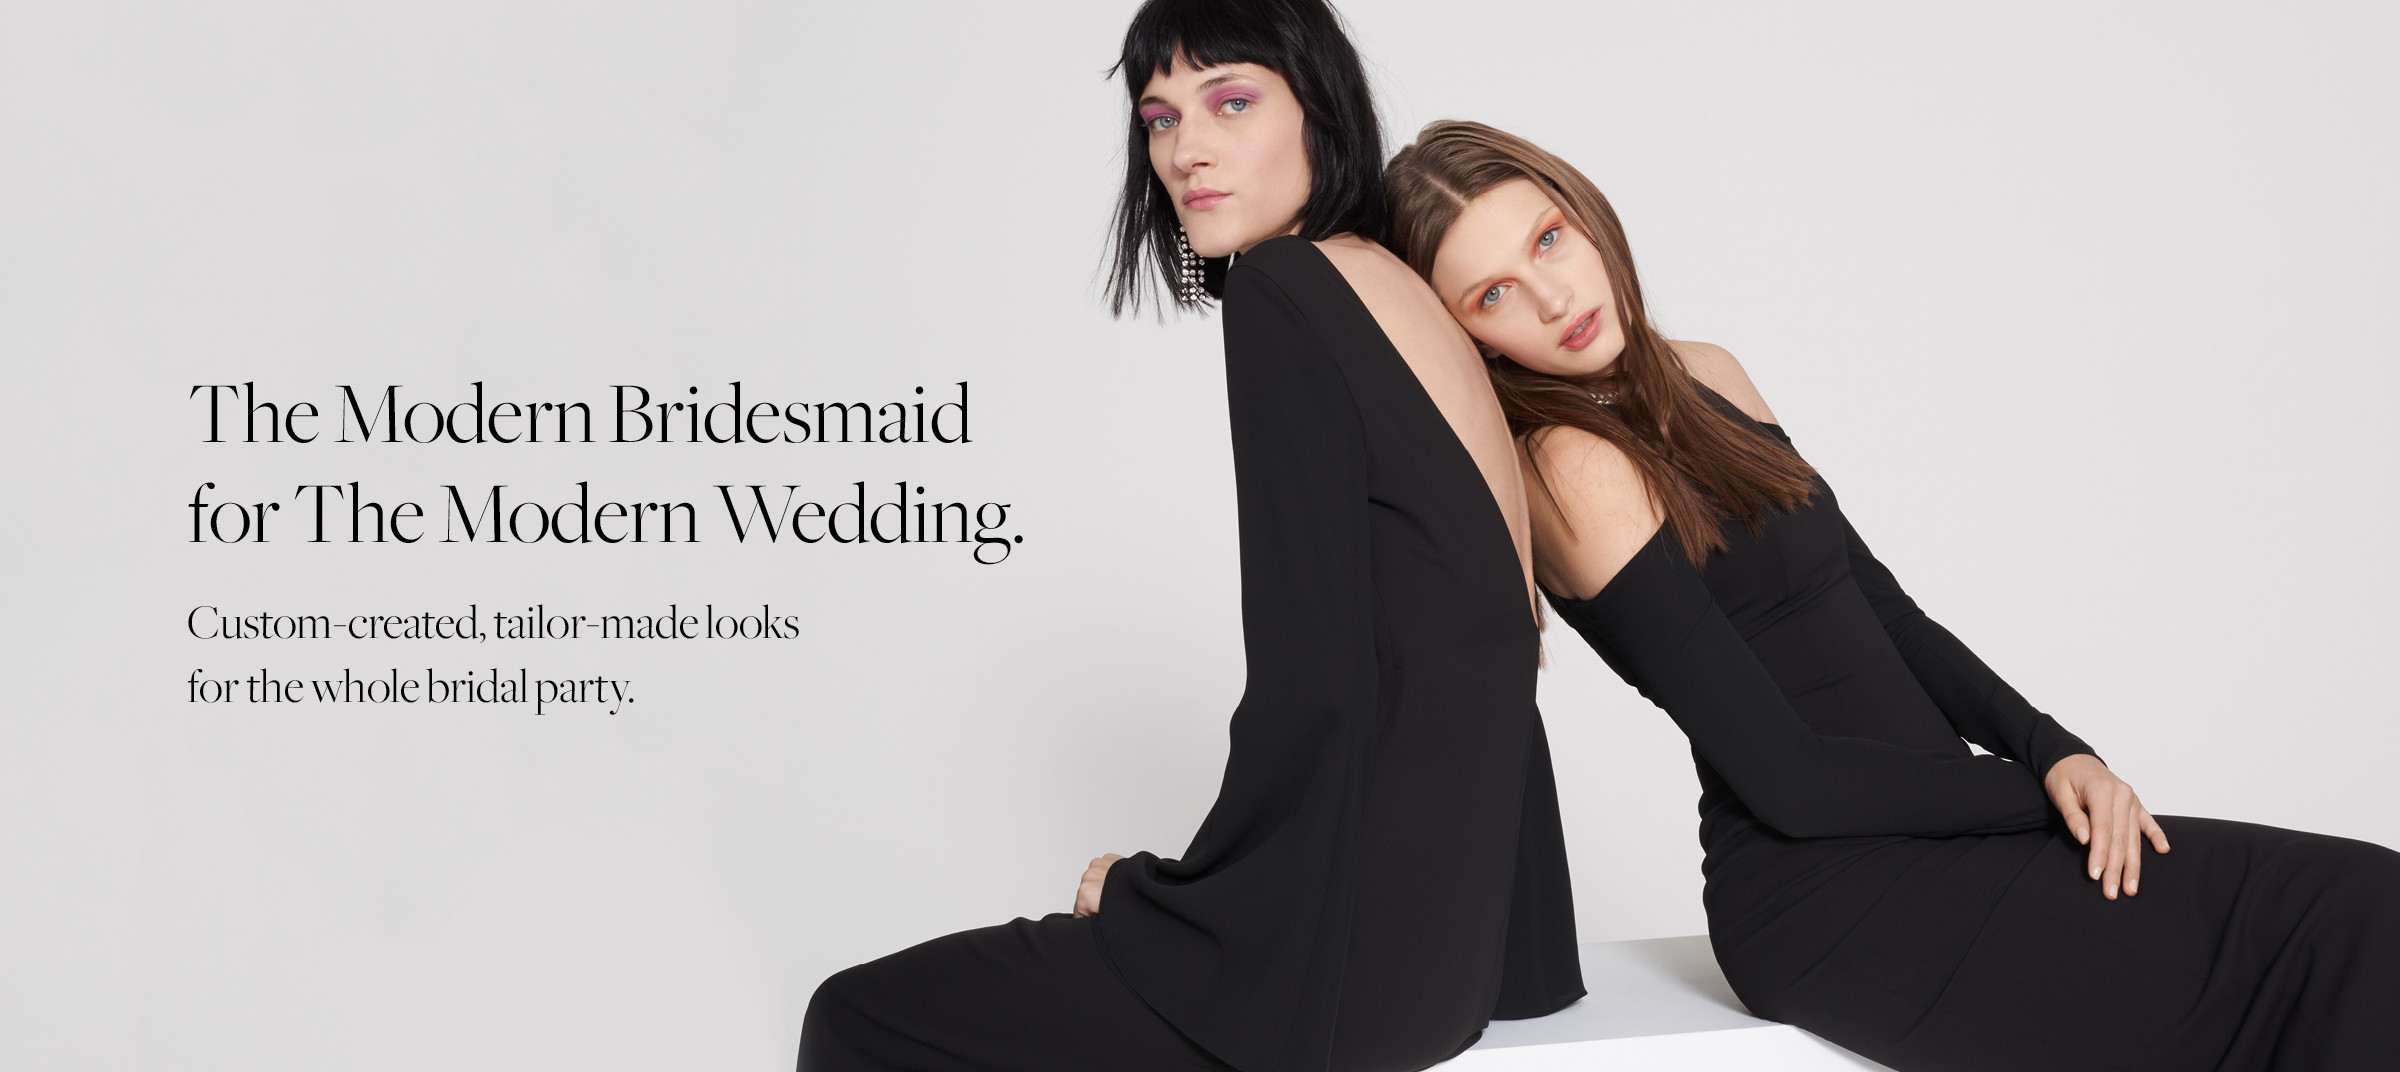 Bridal app ad campaign for Fame and Partners by DTE Studio.